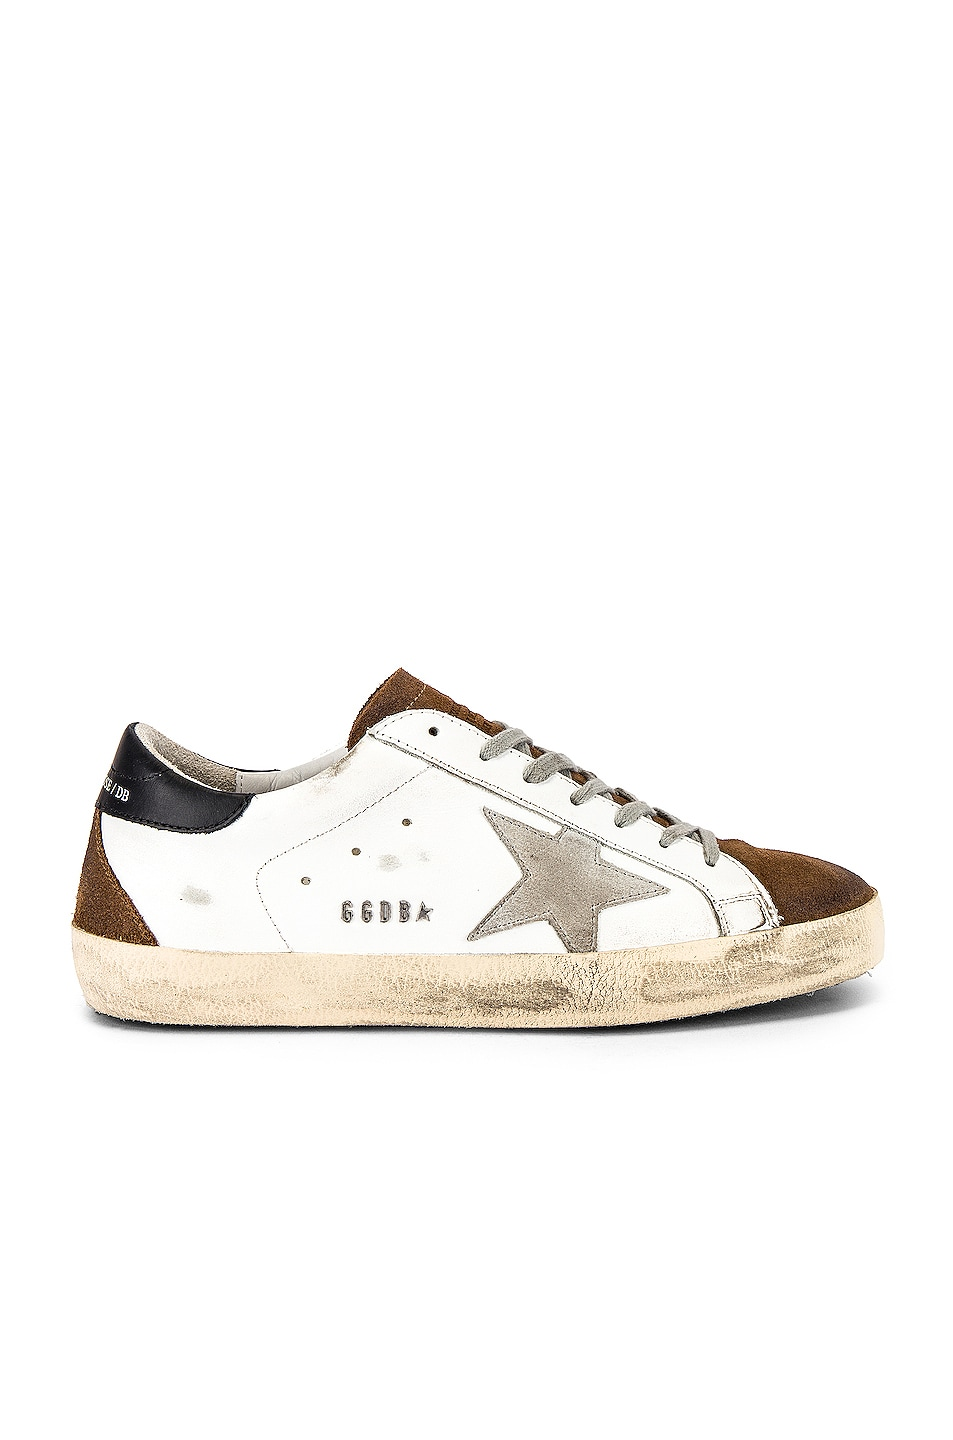 Image 2 of Golden Goose Superstar Sneaker in White Mud Suede & Ice Star